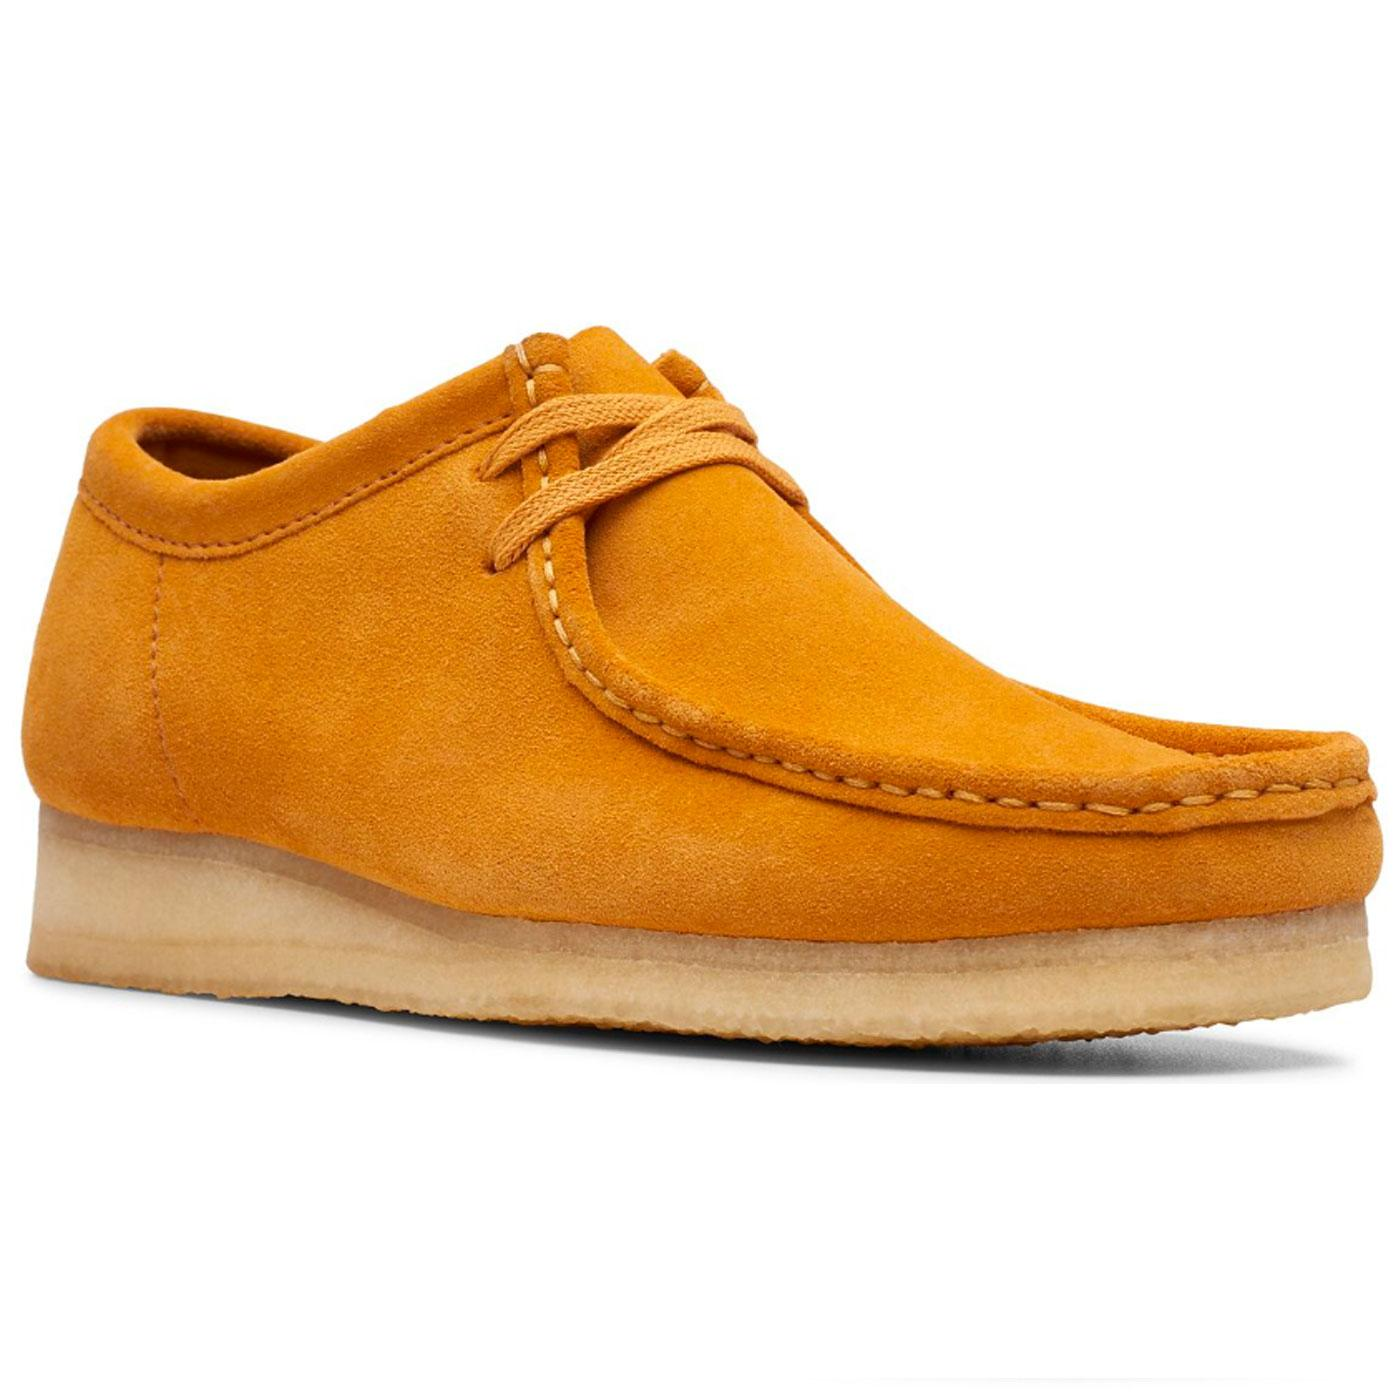 Wallabee CLARKS ORIGINALS Women's Suede Shoes (T)